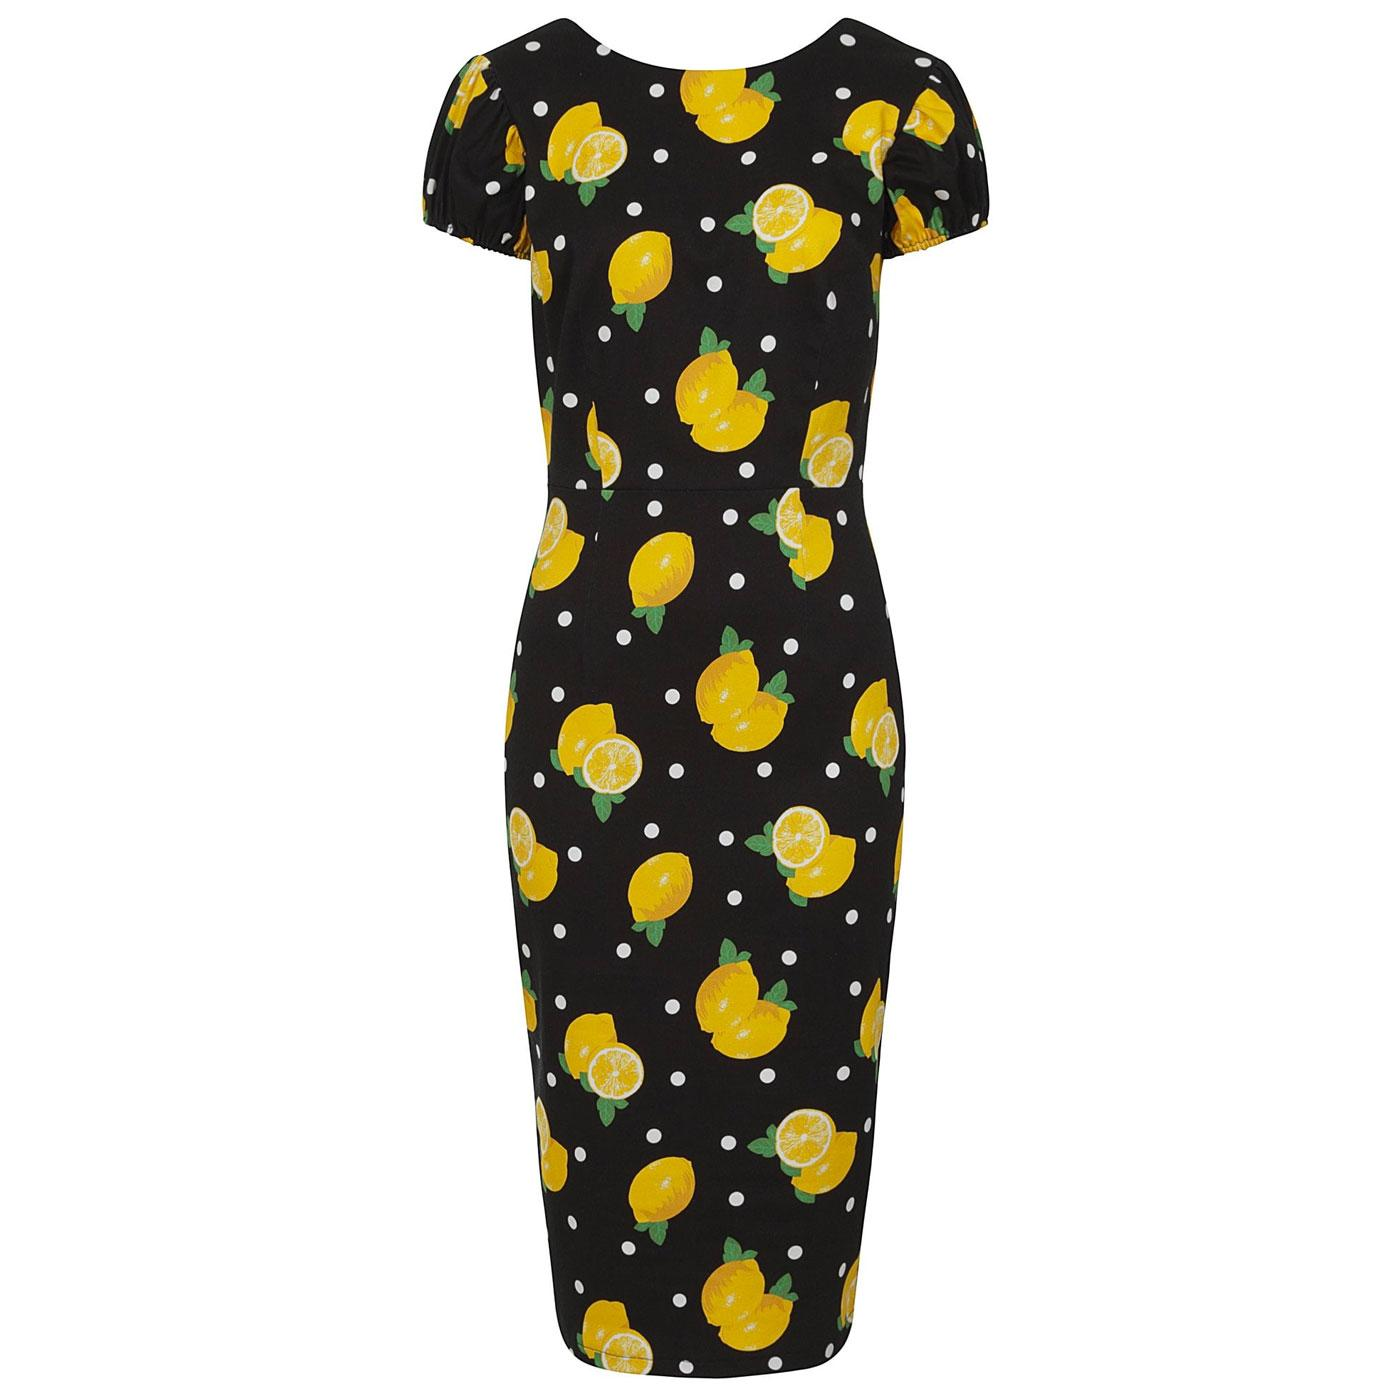 Demira COLLECTIF Polka Lemon Print Pencil Dress